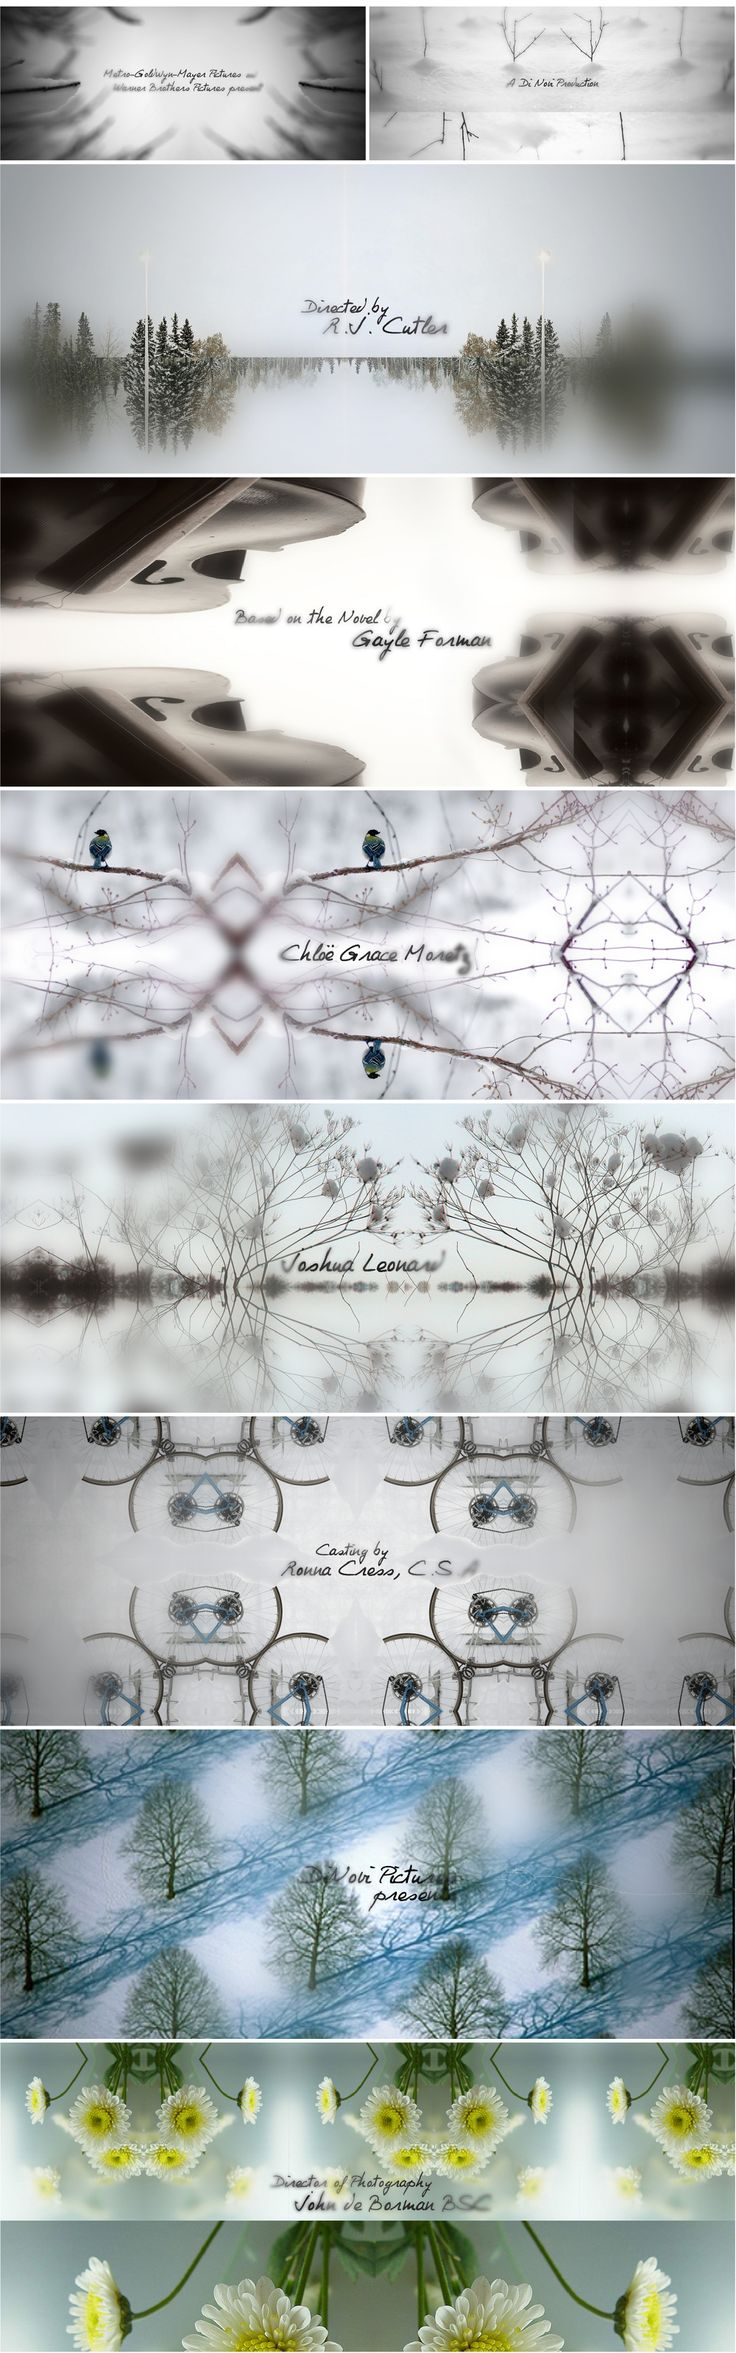 Title sequence design - motion design   If I stay - Hyejung Bae